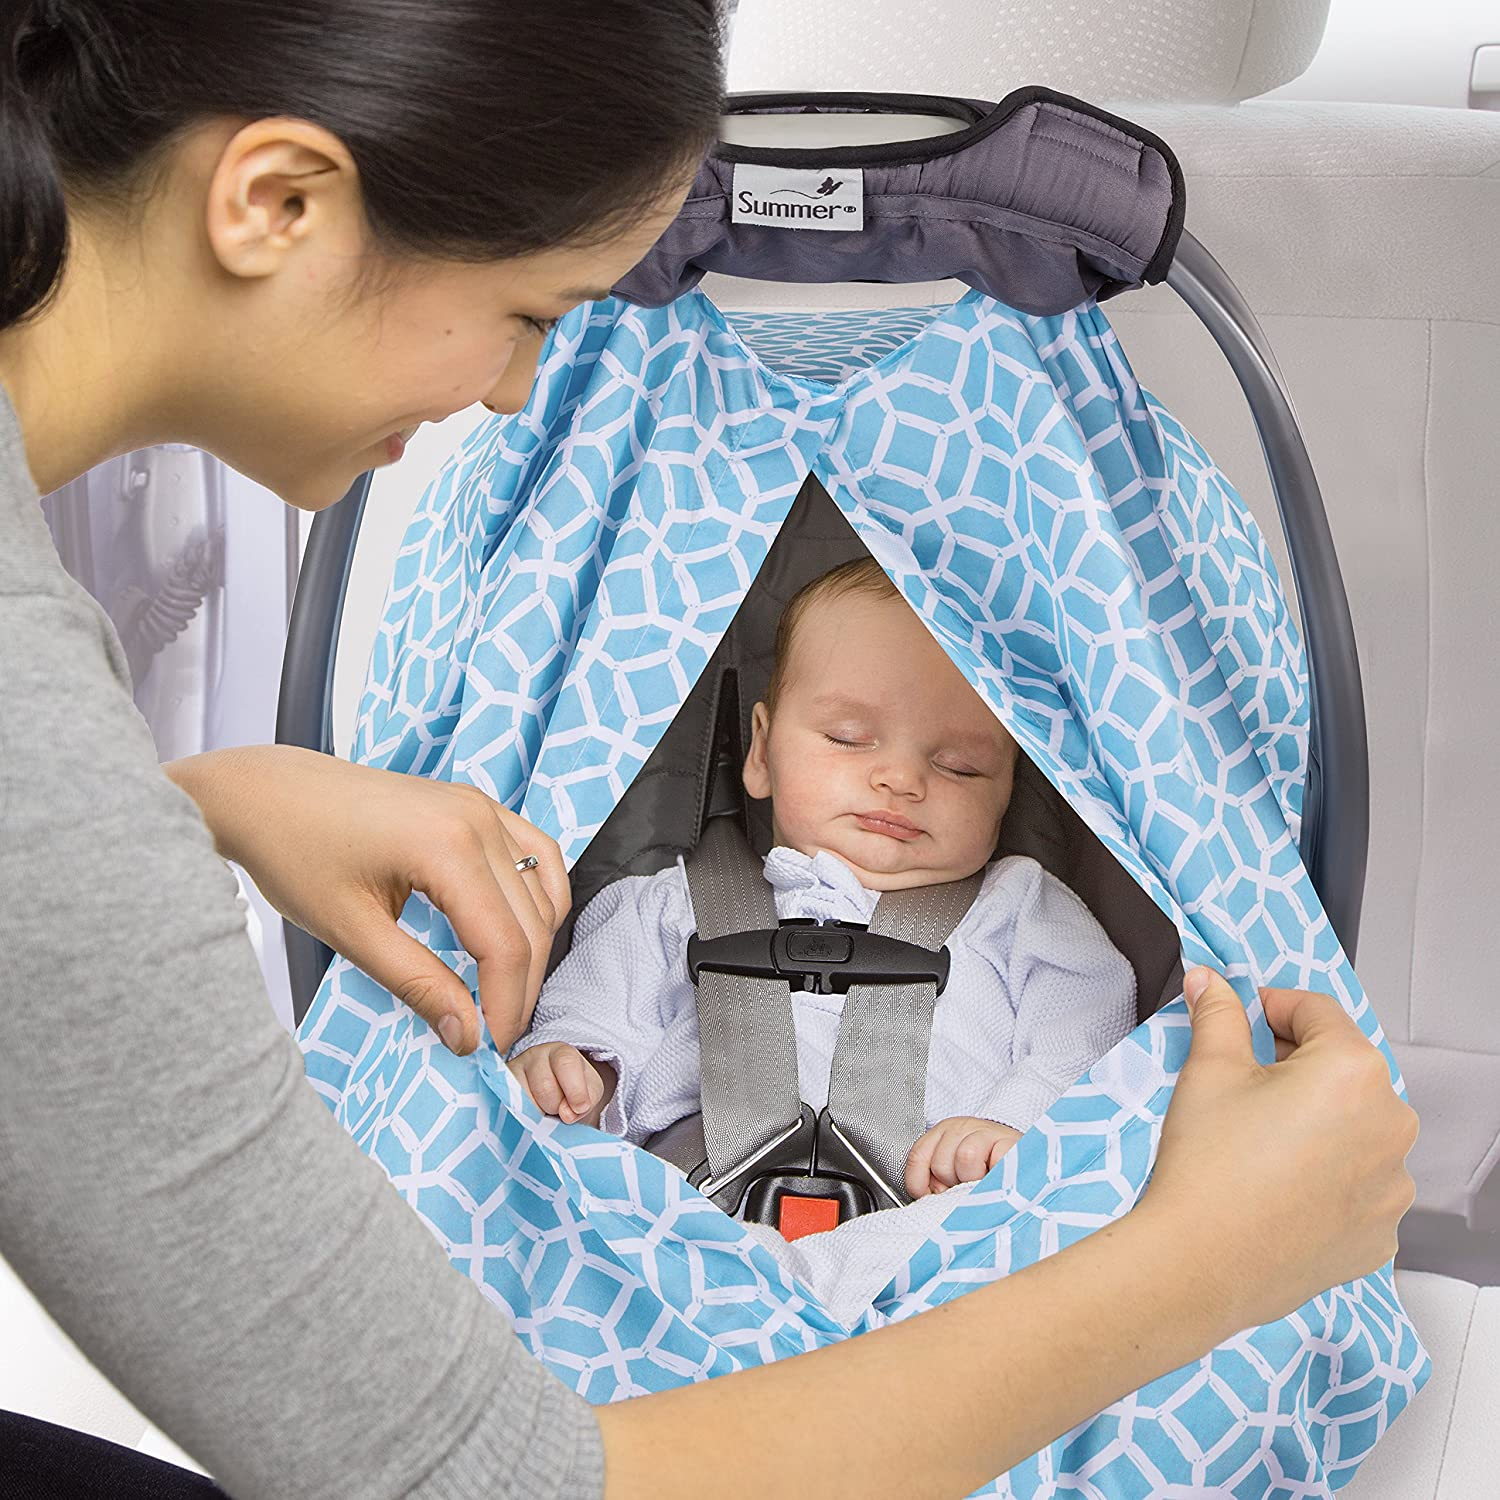 Amazon.com: Summer Infant 2-in-1 Carry and Cover Infant Car Seat ...